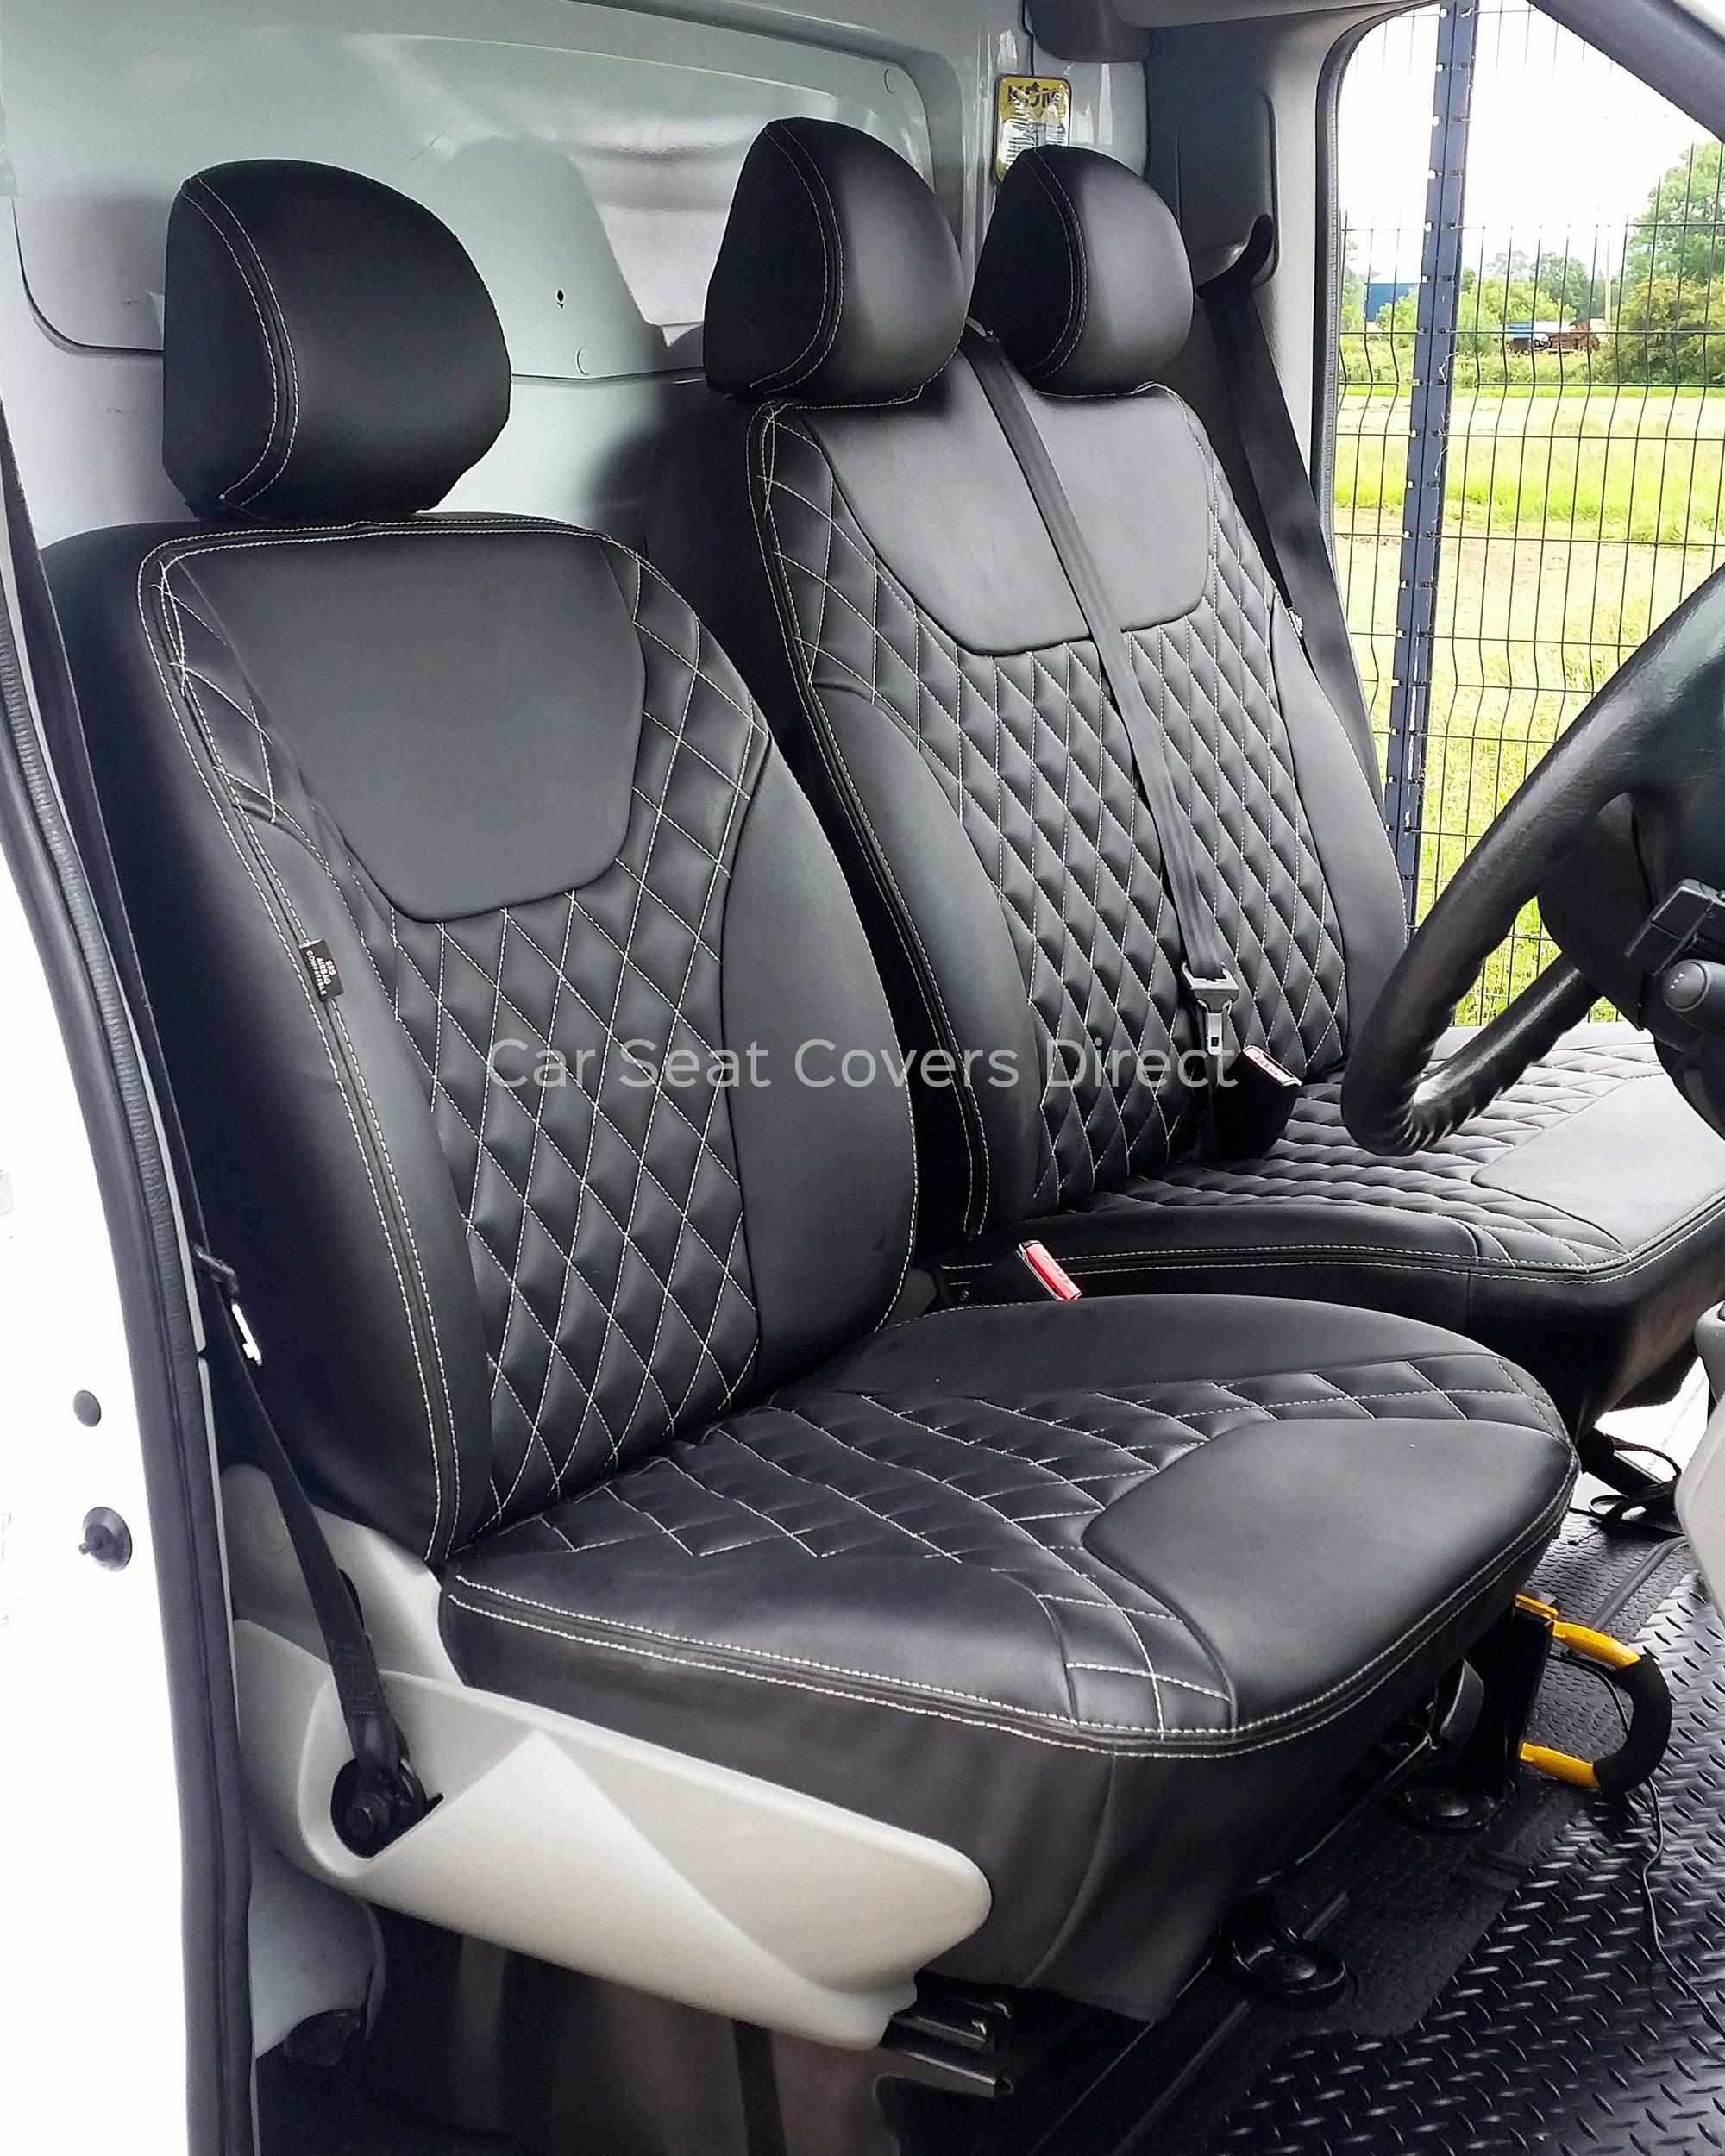 Renault Trafic Tailored seat covers